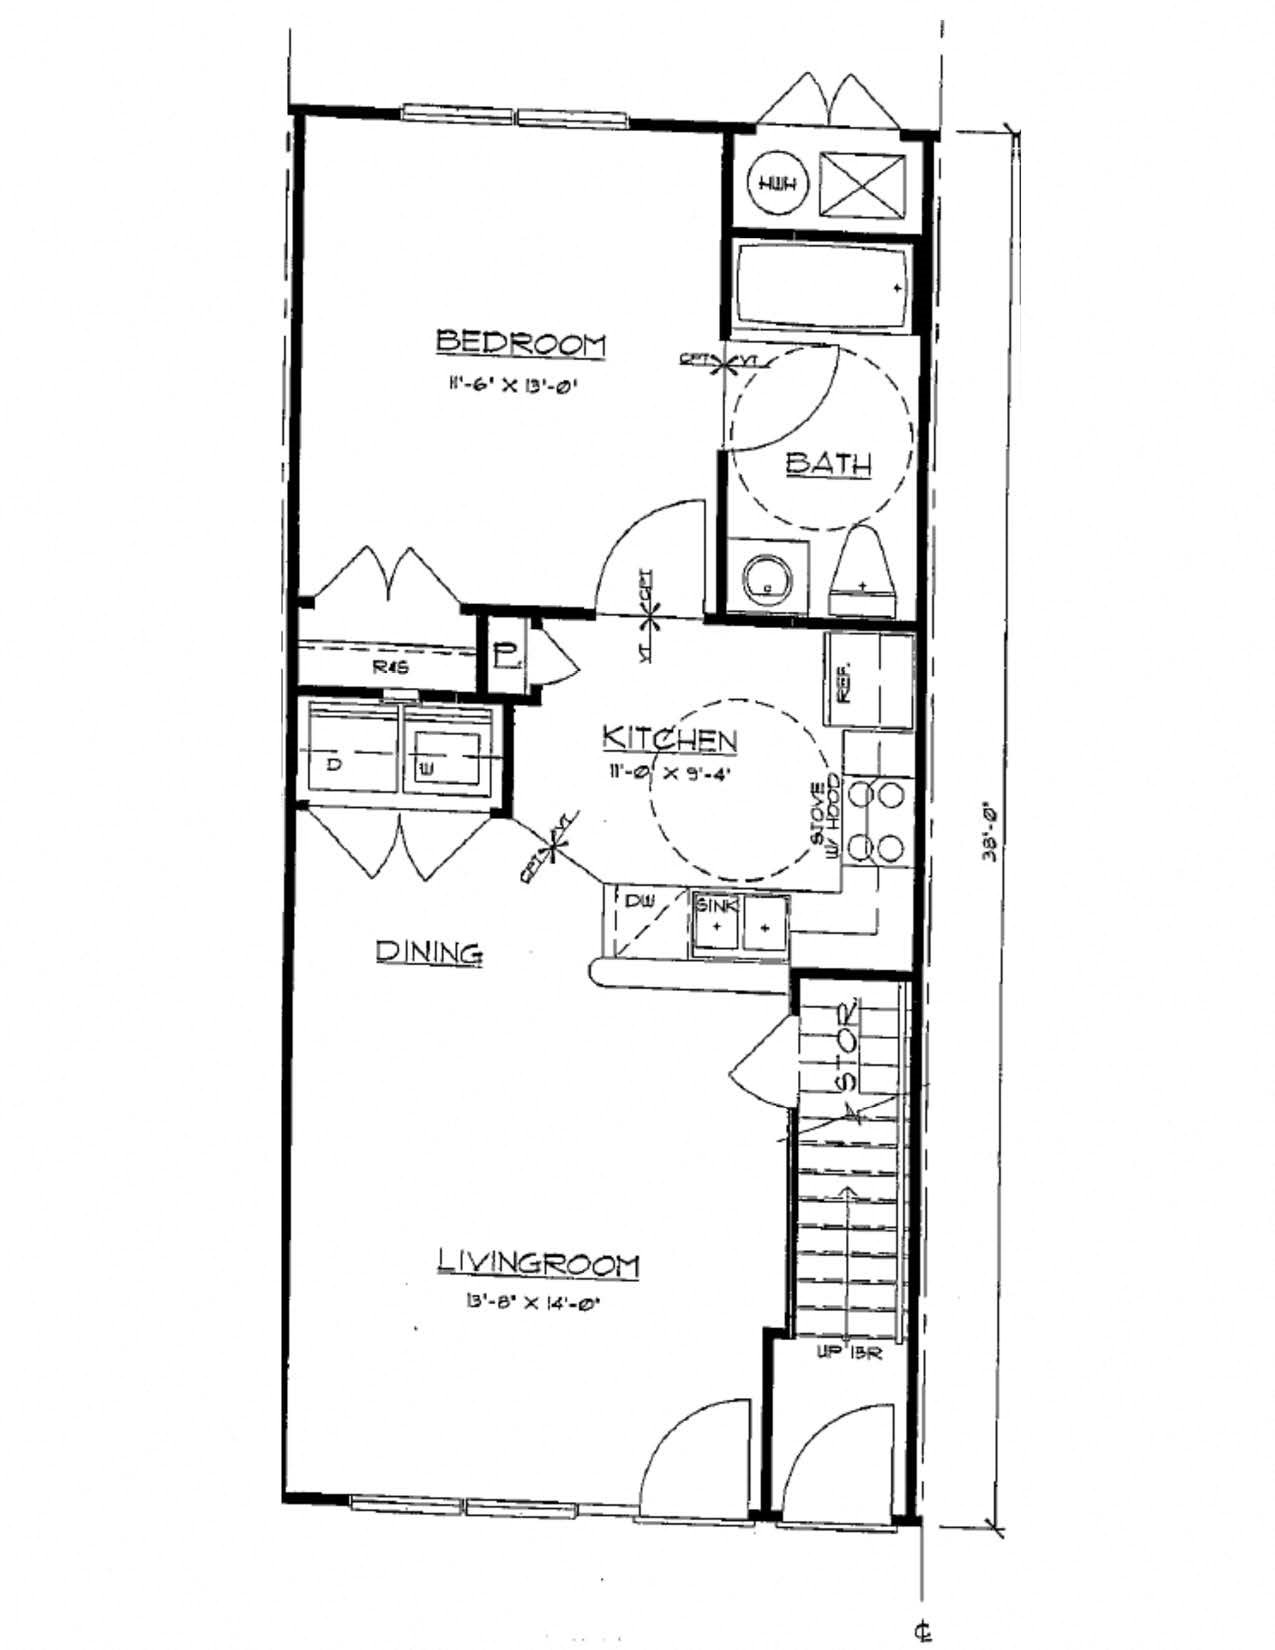 1 Bedroom Flat Floor Plan 1